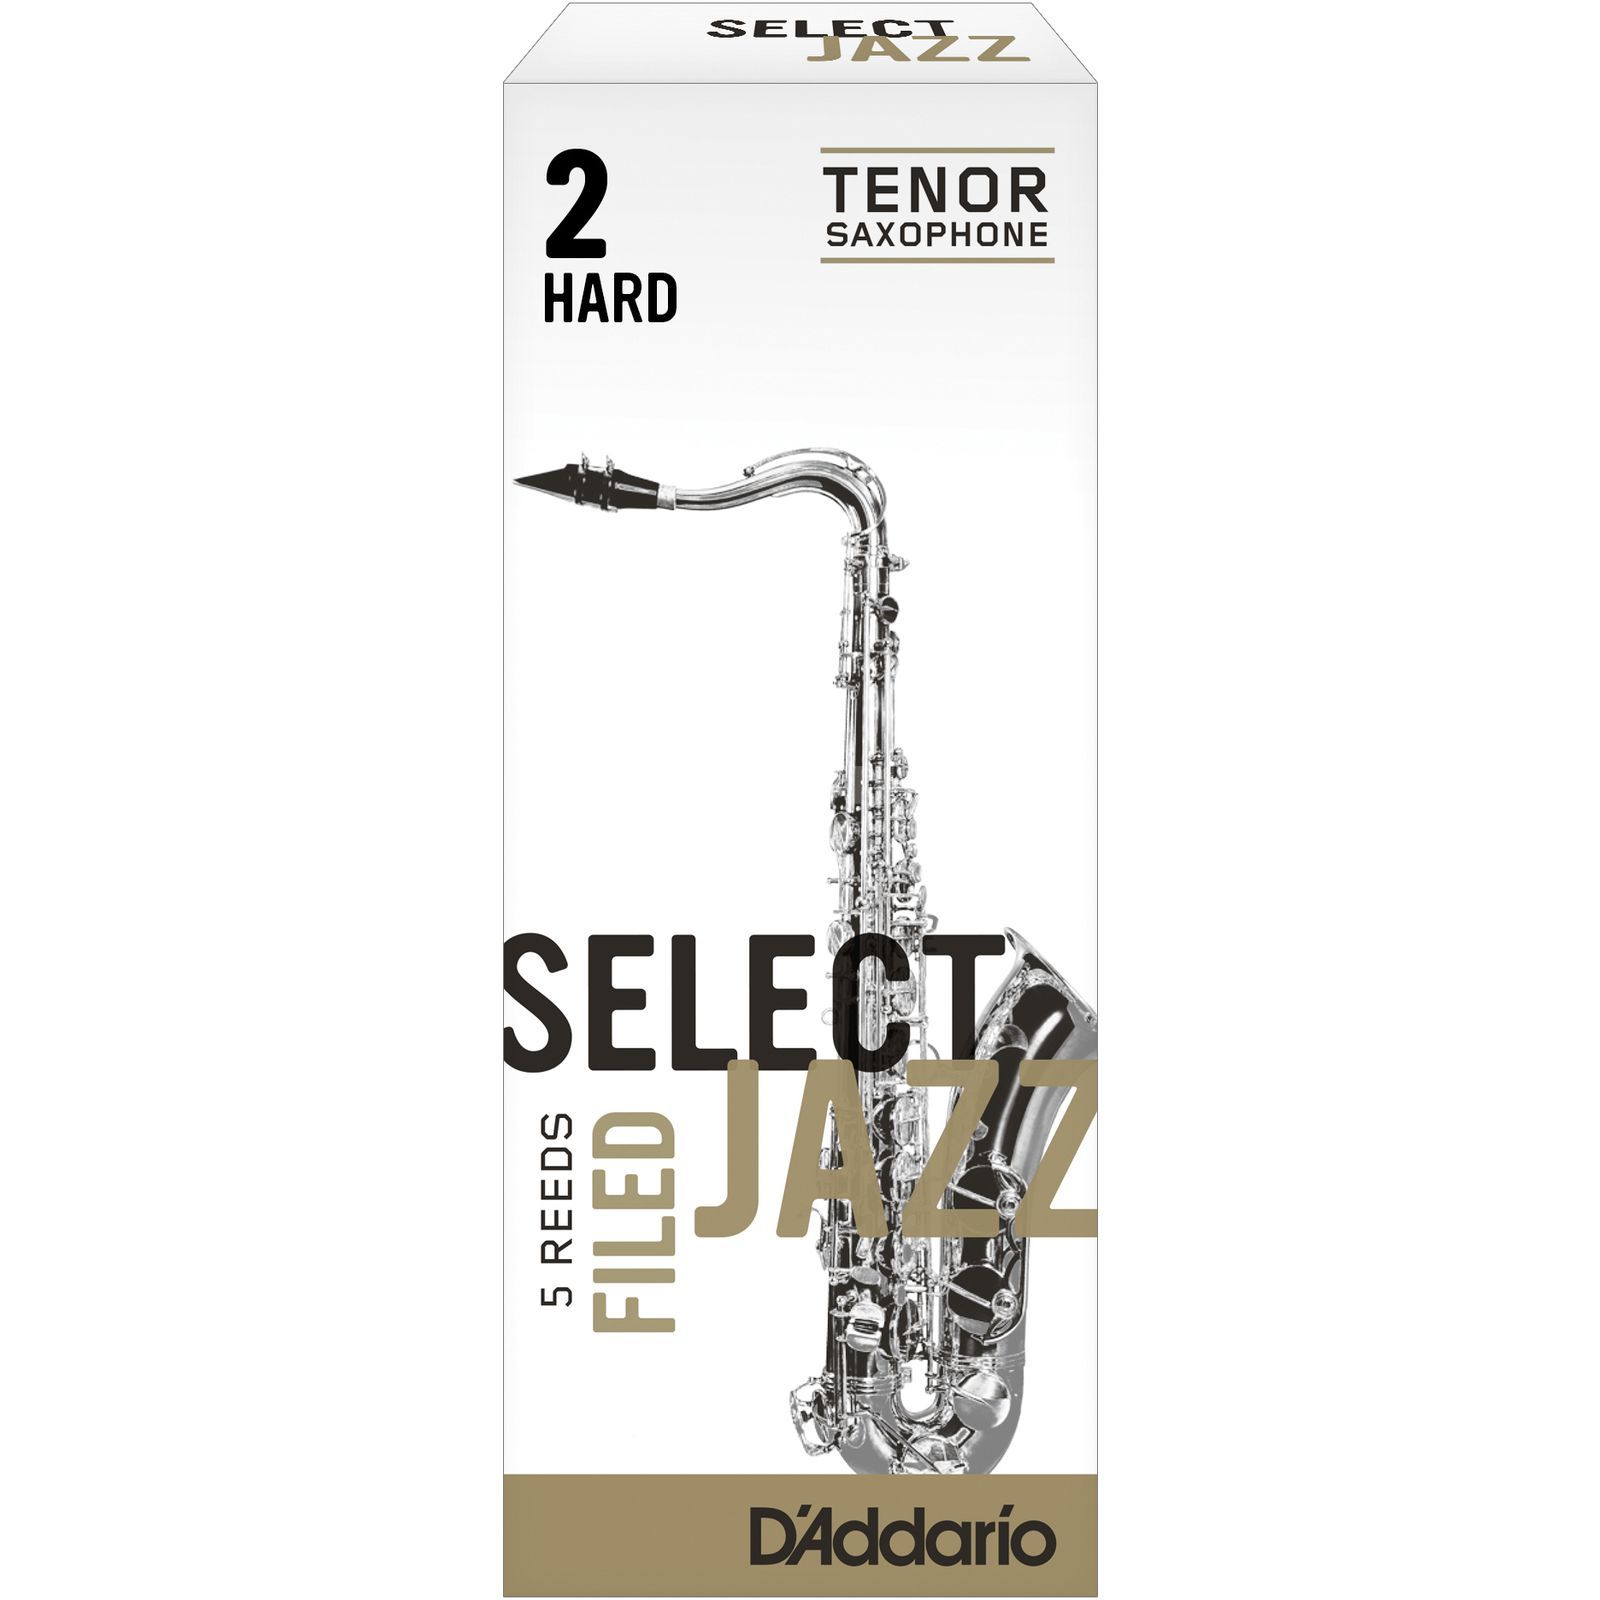 D'Addario Woodwinds Tenor Sax Reeds 2H Box of 5 Immagine prodotto